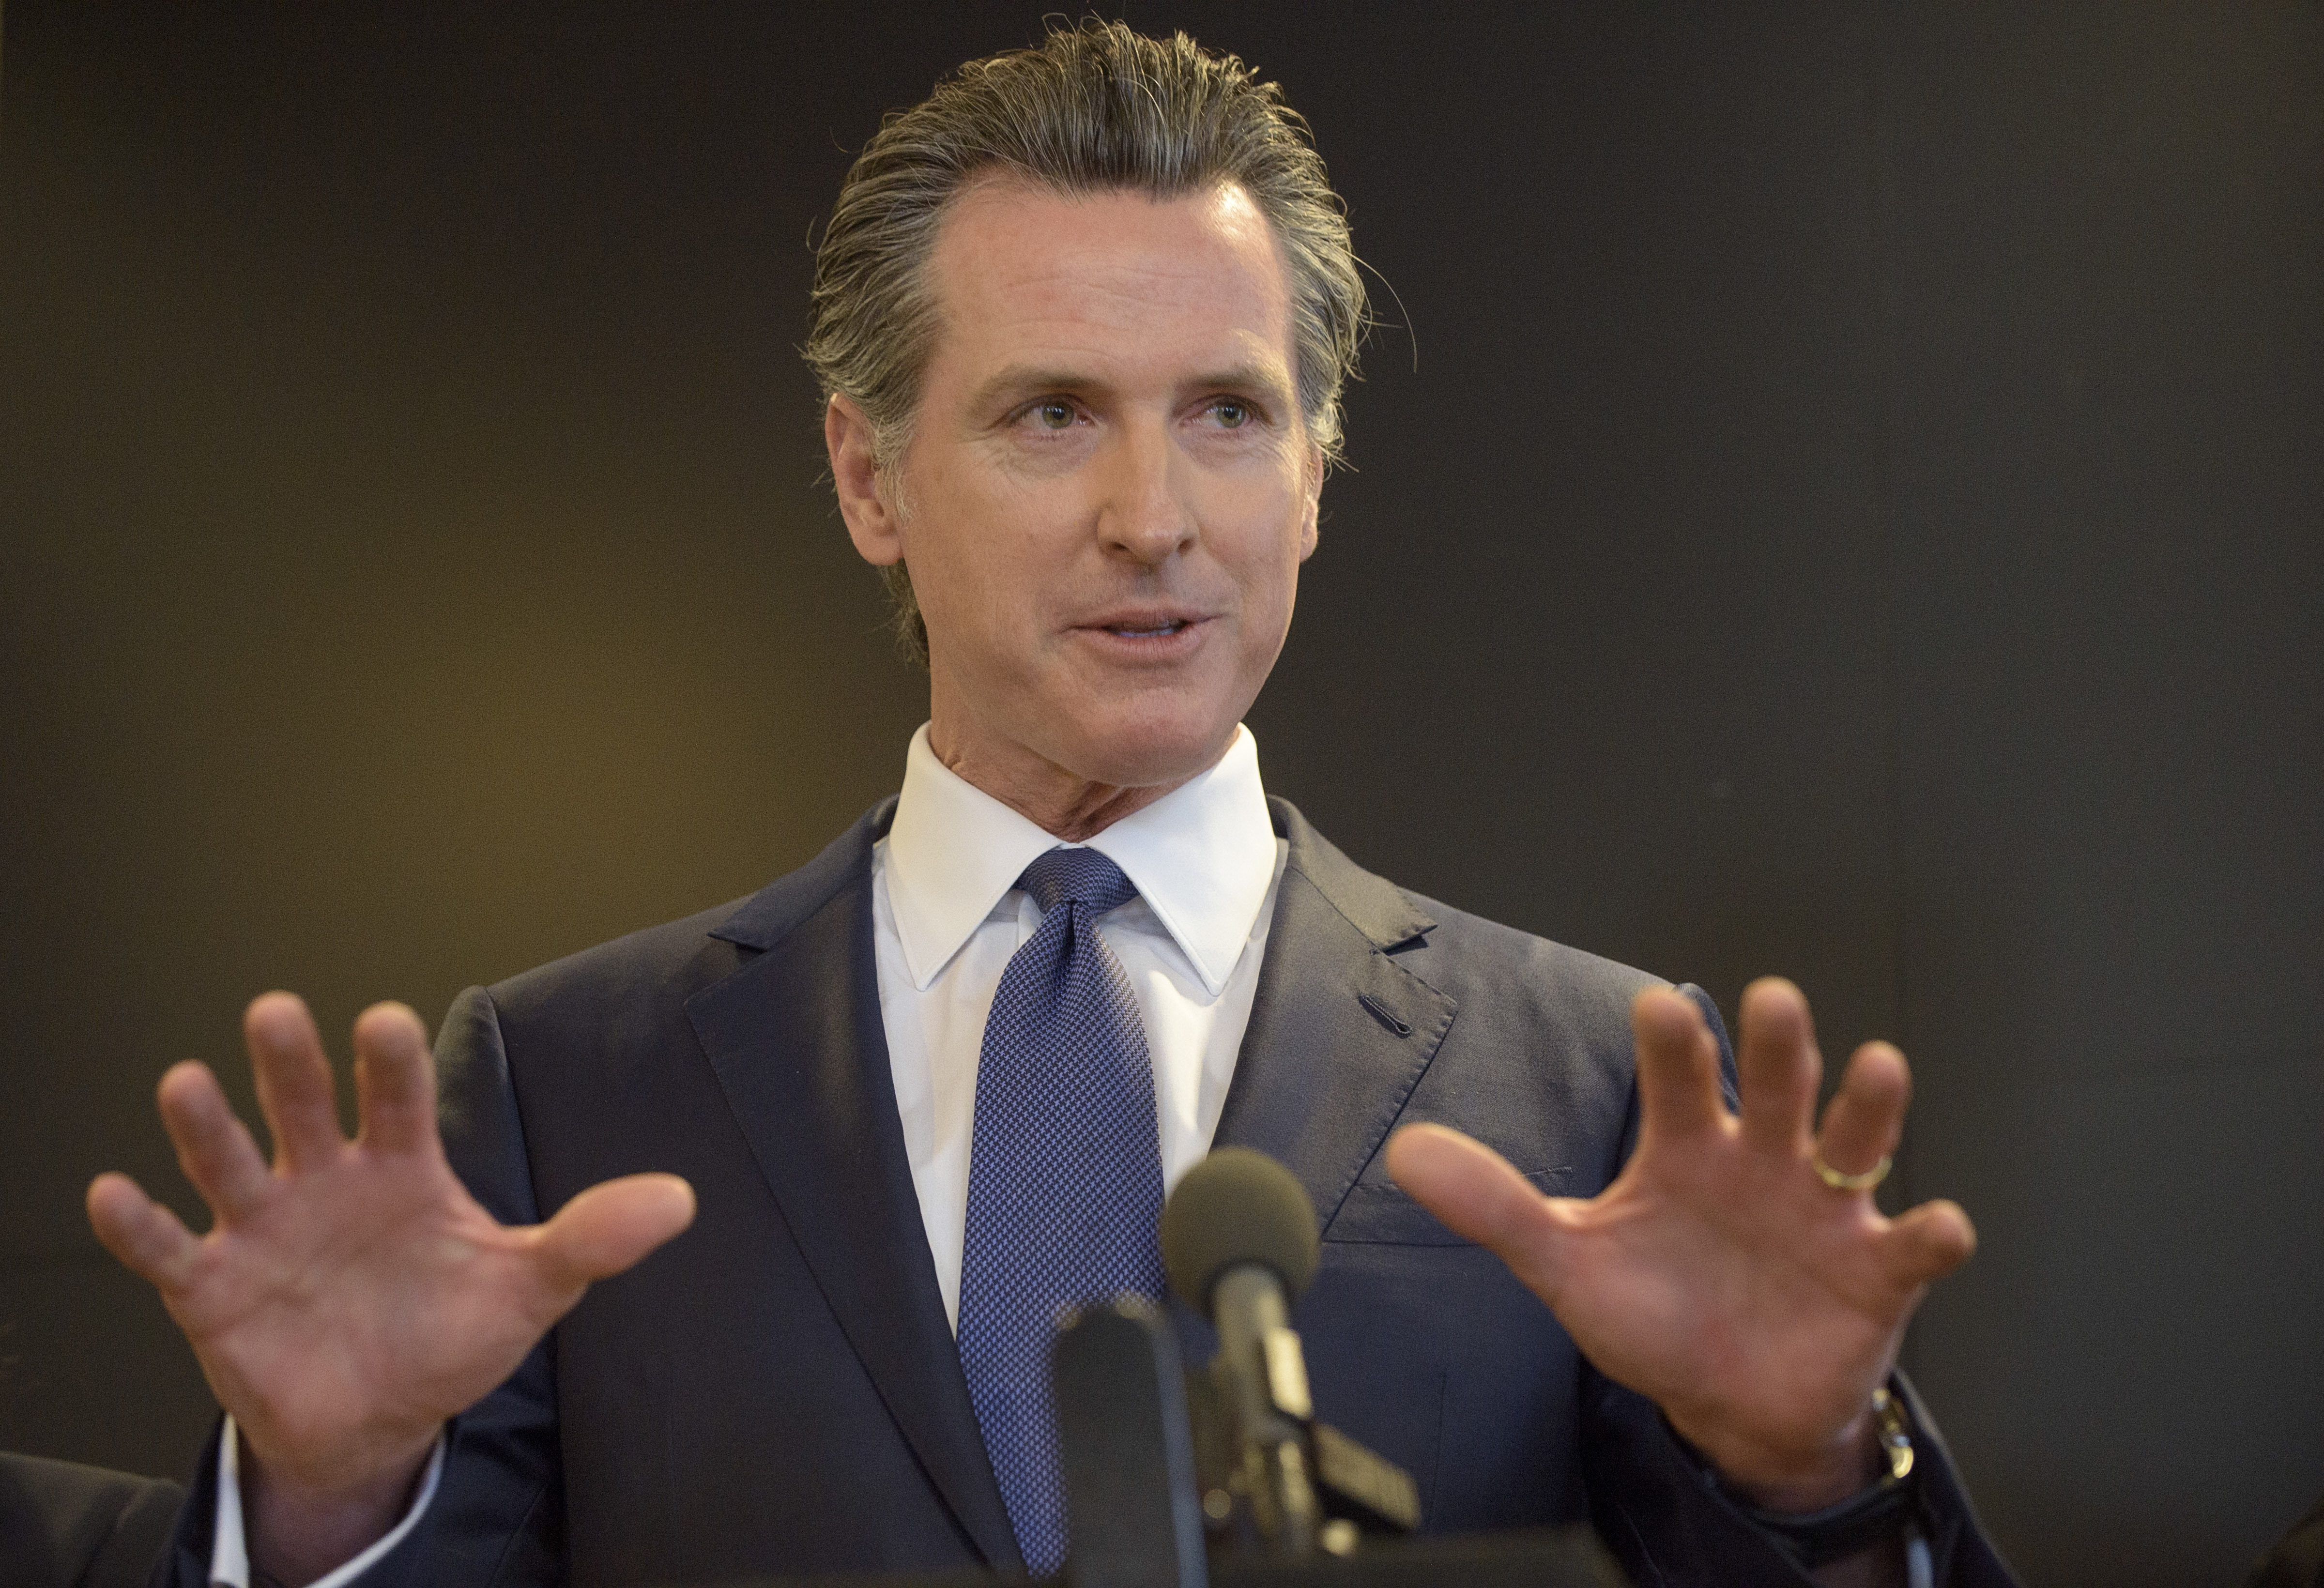 California Governor Gavin Newsom speaks to members of the press at a news conference in Sacramento, Calif., on Feb. 27, 2020.